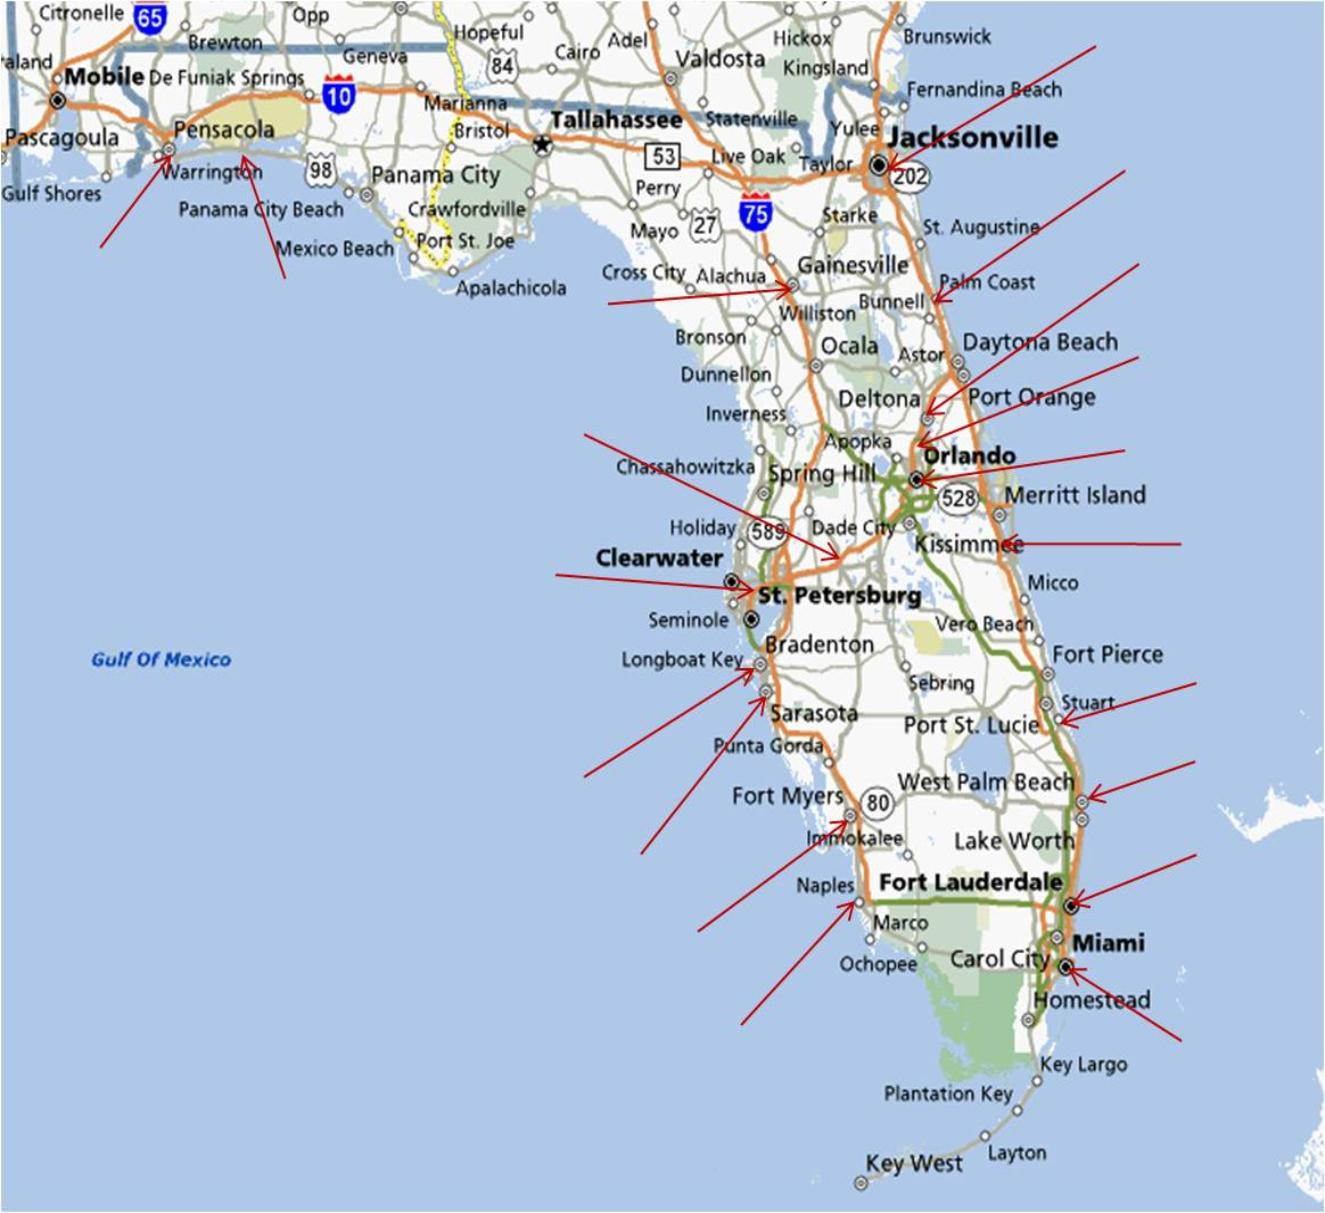 Map Of Florida East Coast Beach Towns | The Best Beaches In The World - Map Of Florida East Coast Beach Towns